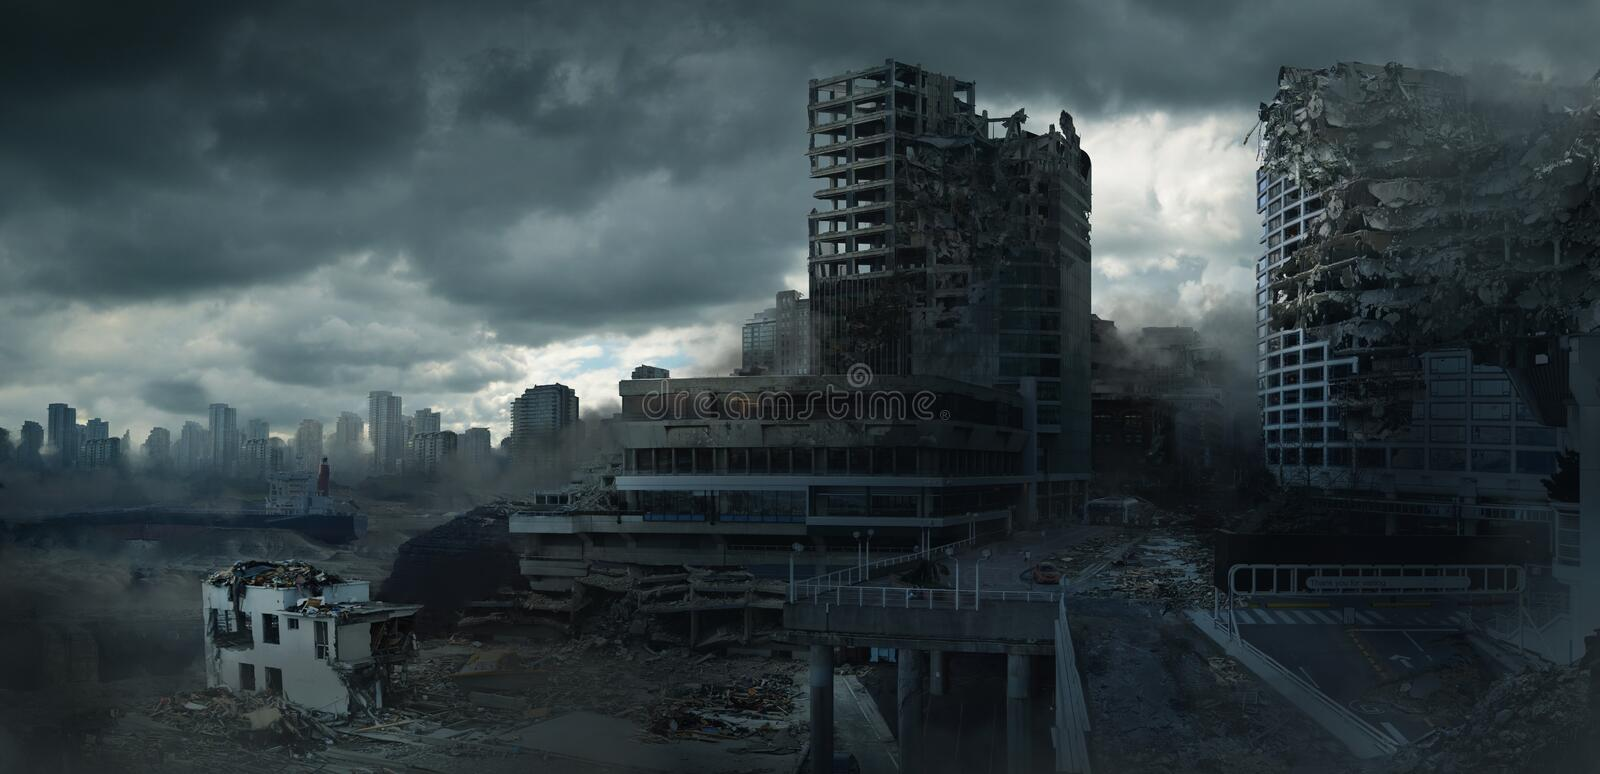 Post Apocalyptic End of Civilization royalty free stock image